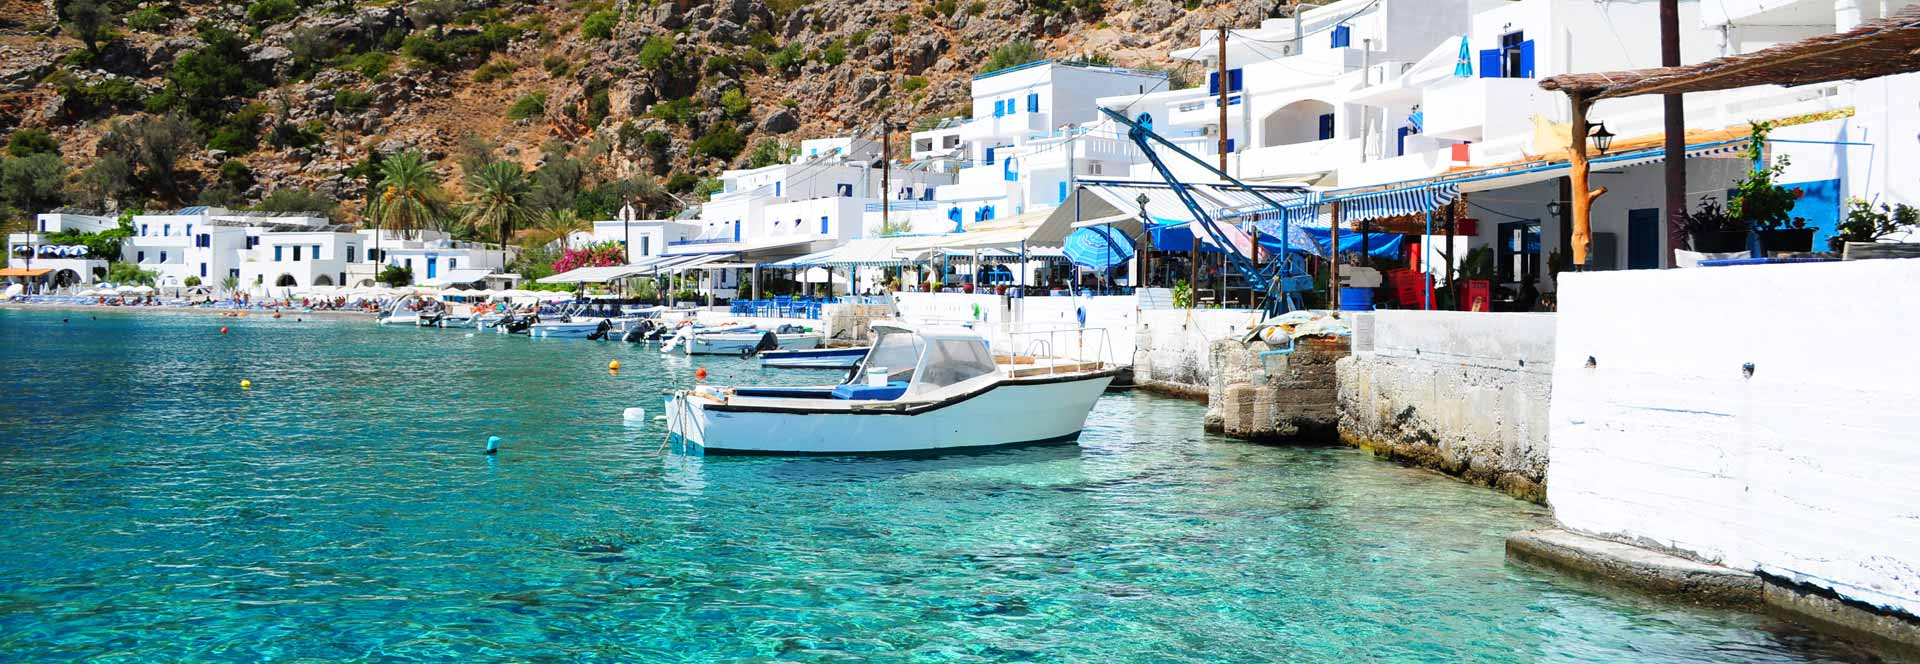 greece holiday Find amazing deals on greece holidays with teletext holidays and enjoy our low deposit options with monthly payment book securely online today.